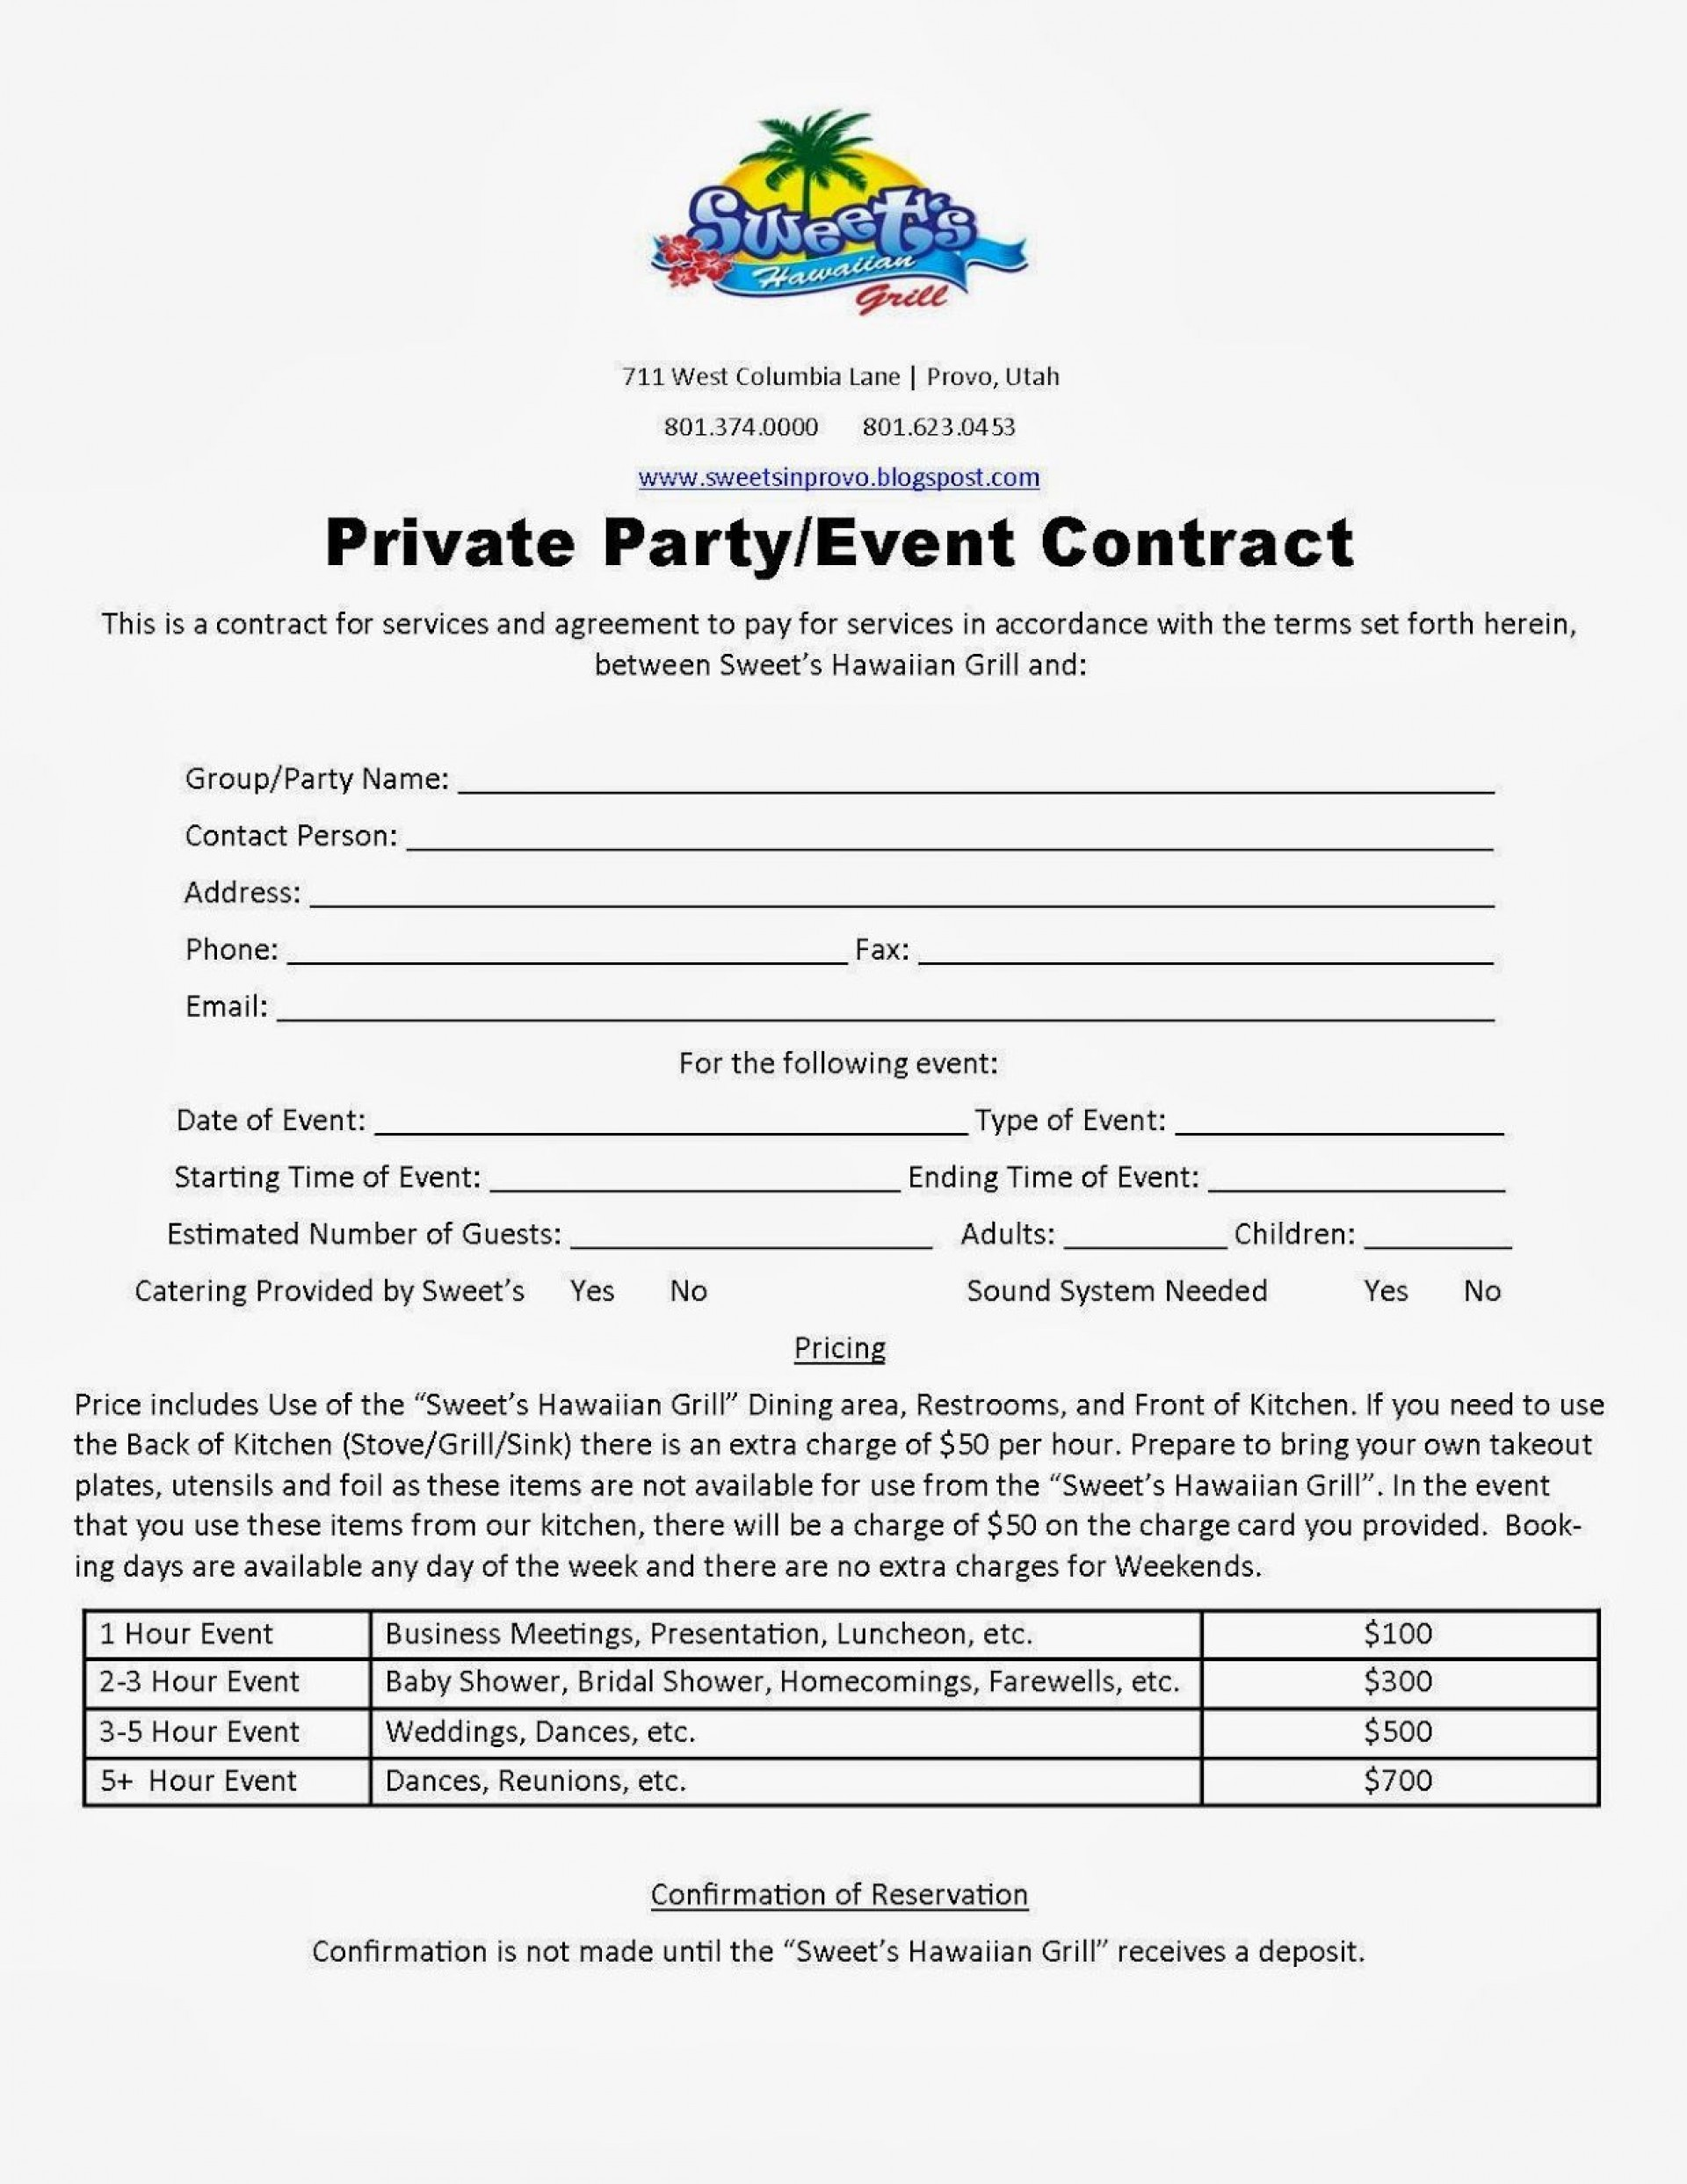 007 Fearsome Wedding Planner Contract Template Design  Word Planning Coordinator Free1920